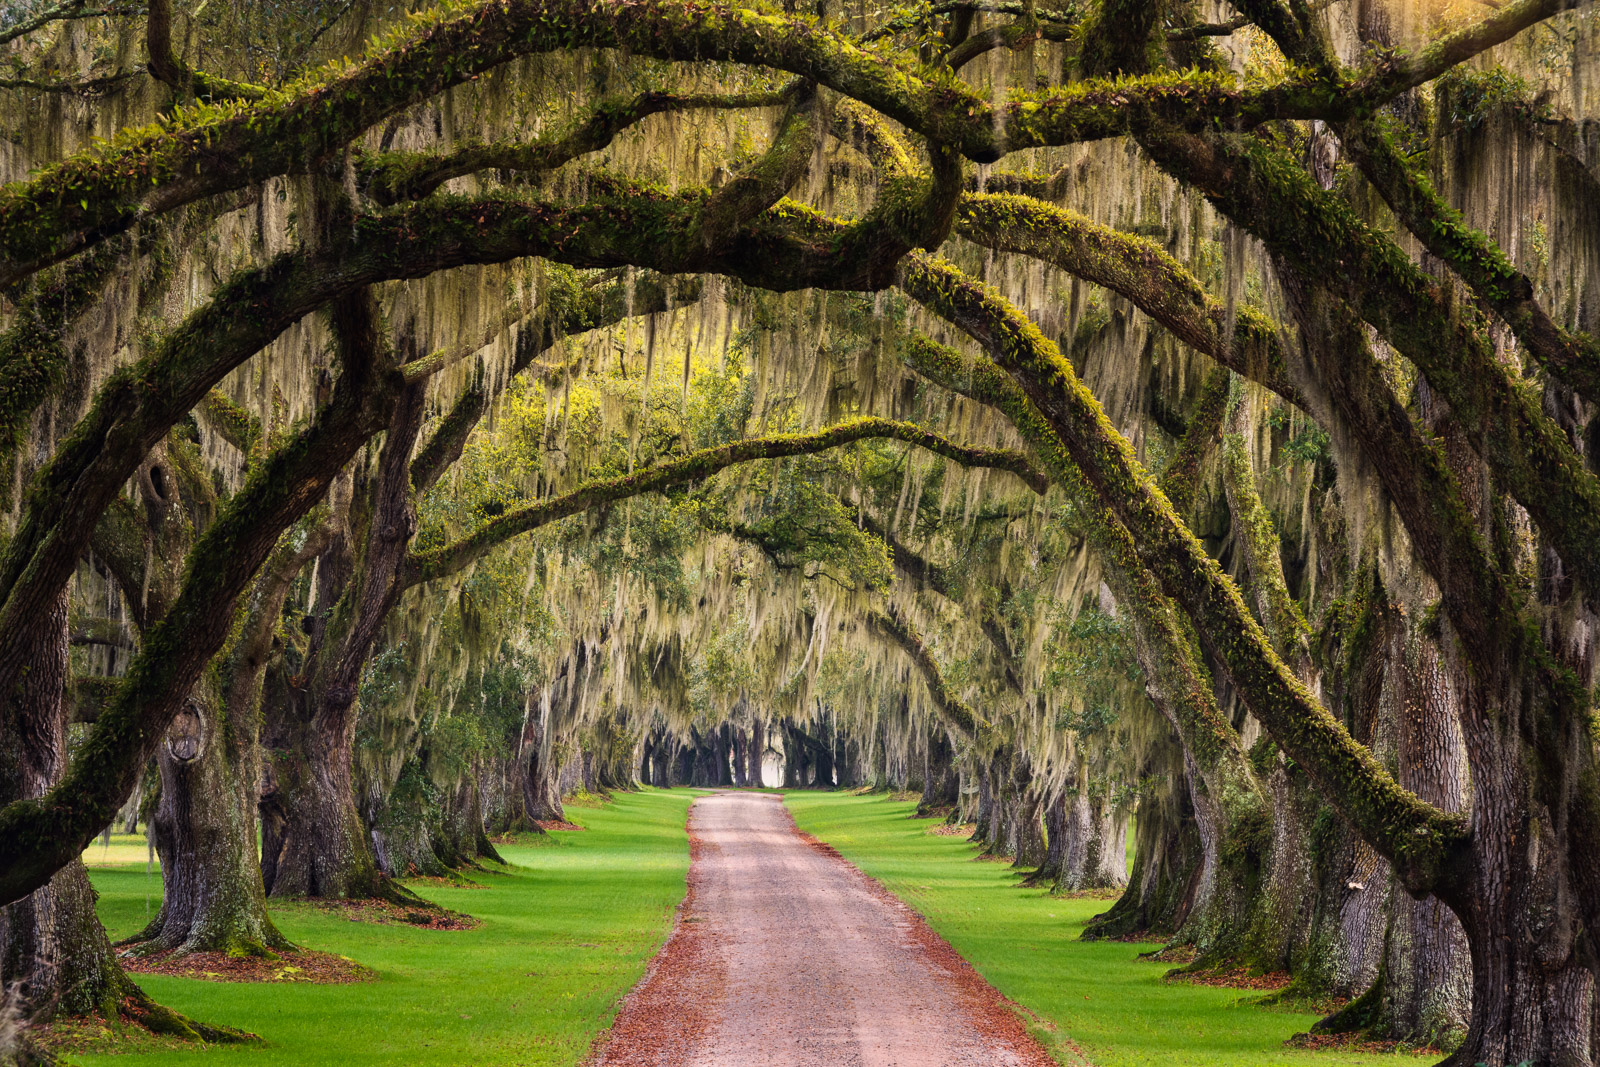 Live Oaks line the drivaway of this historic plantation in Beaufort County, South Carolina.